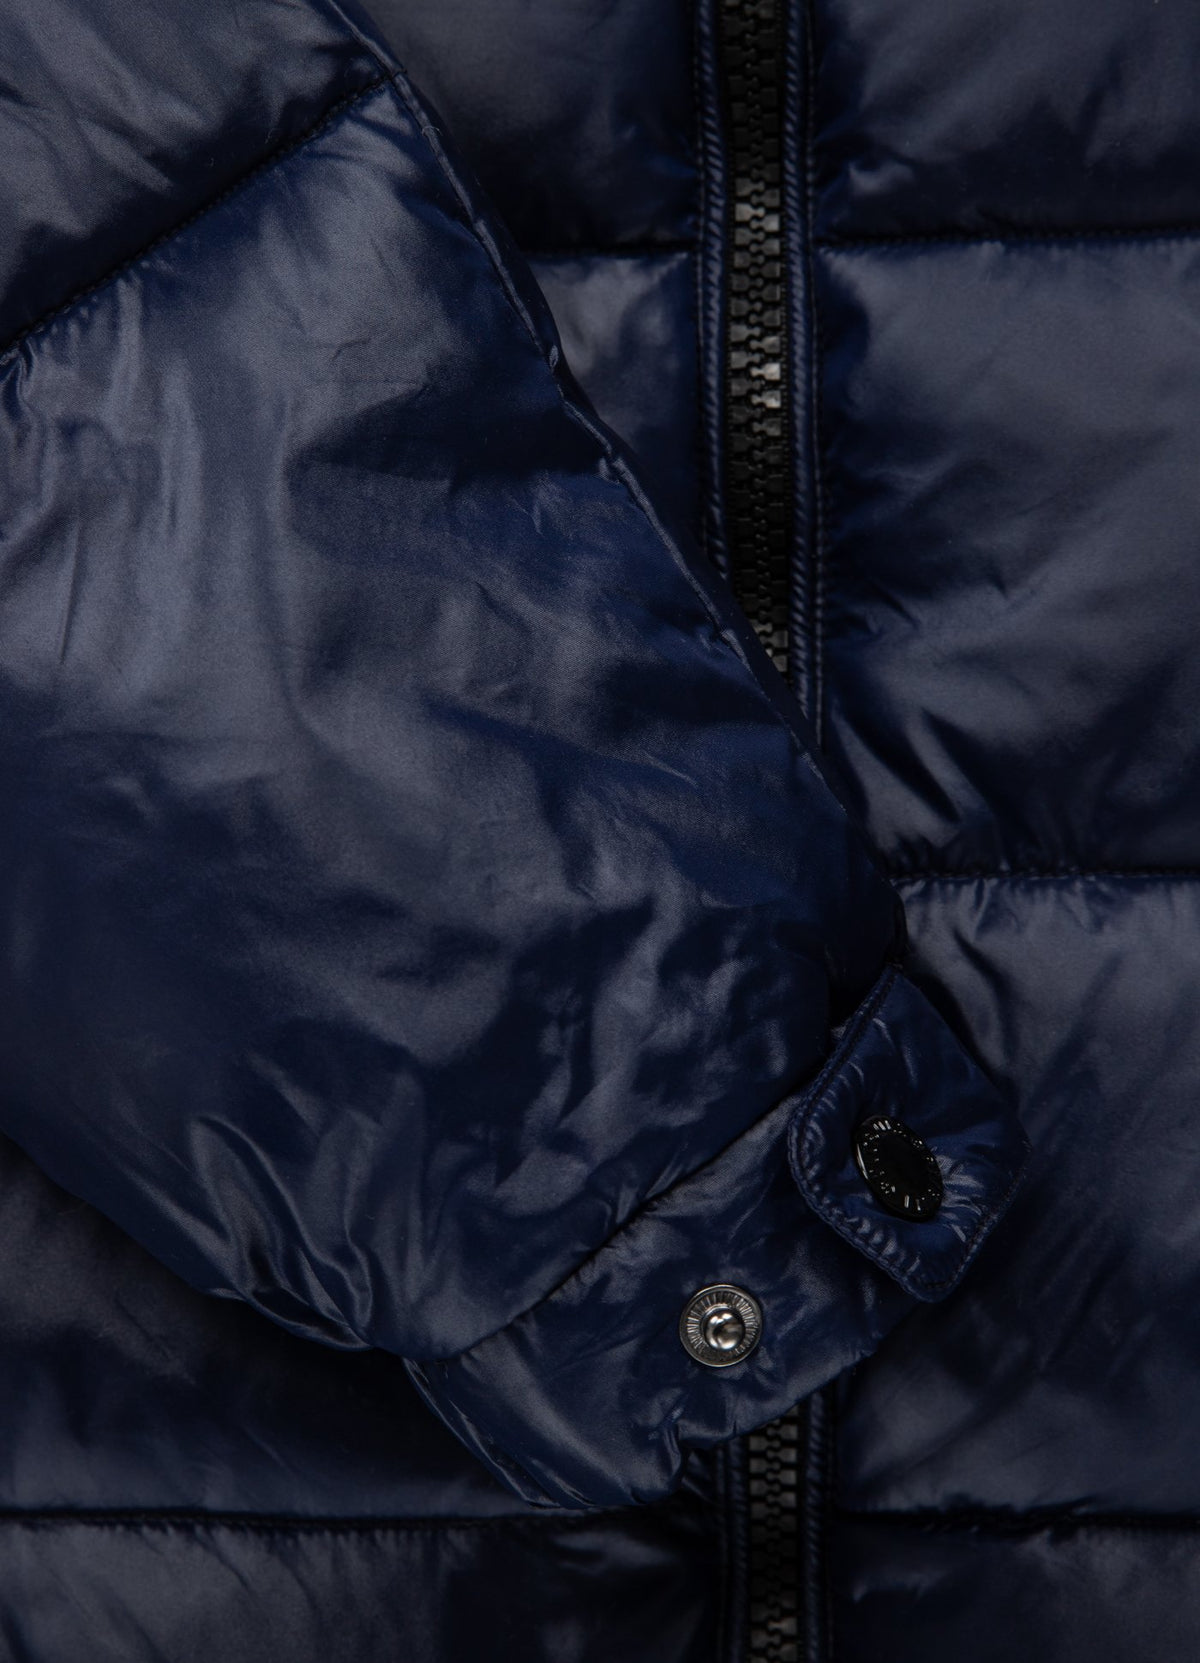 Winter Jacket SHINE Dark Navy - Pitbull West Coast U.S.A.